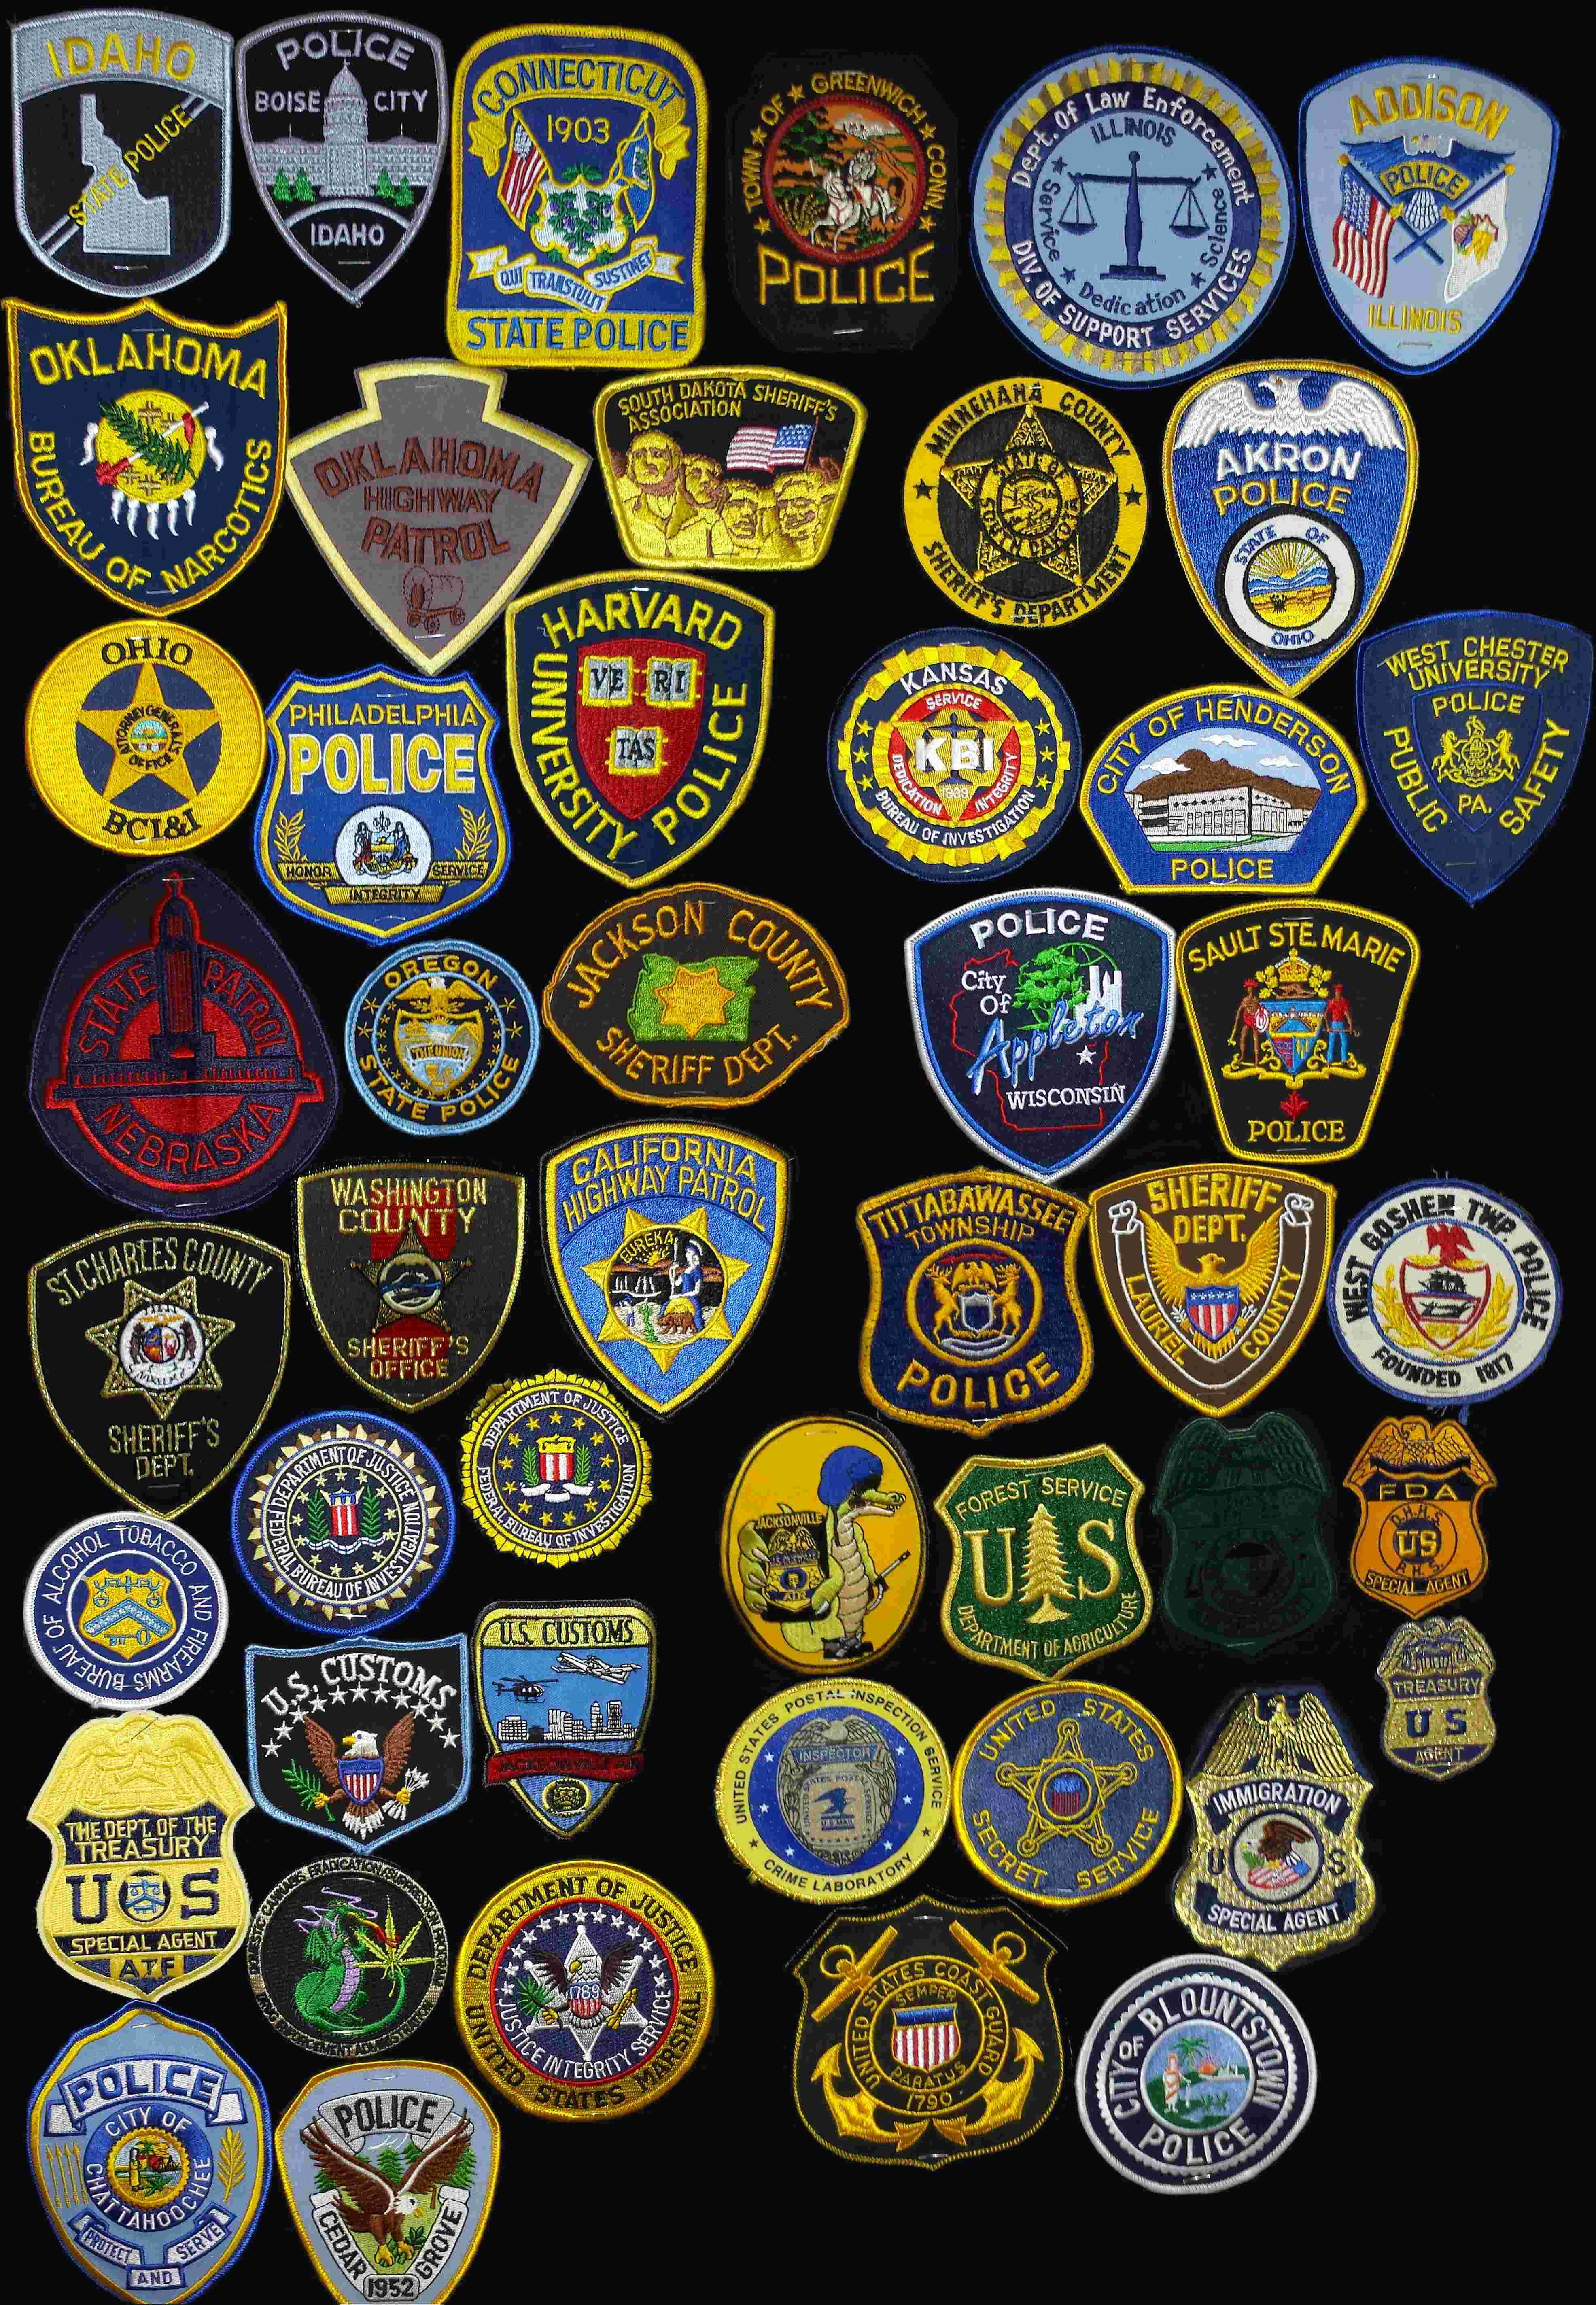 Miscellaneous Law Enforcement Patches